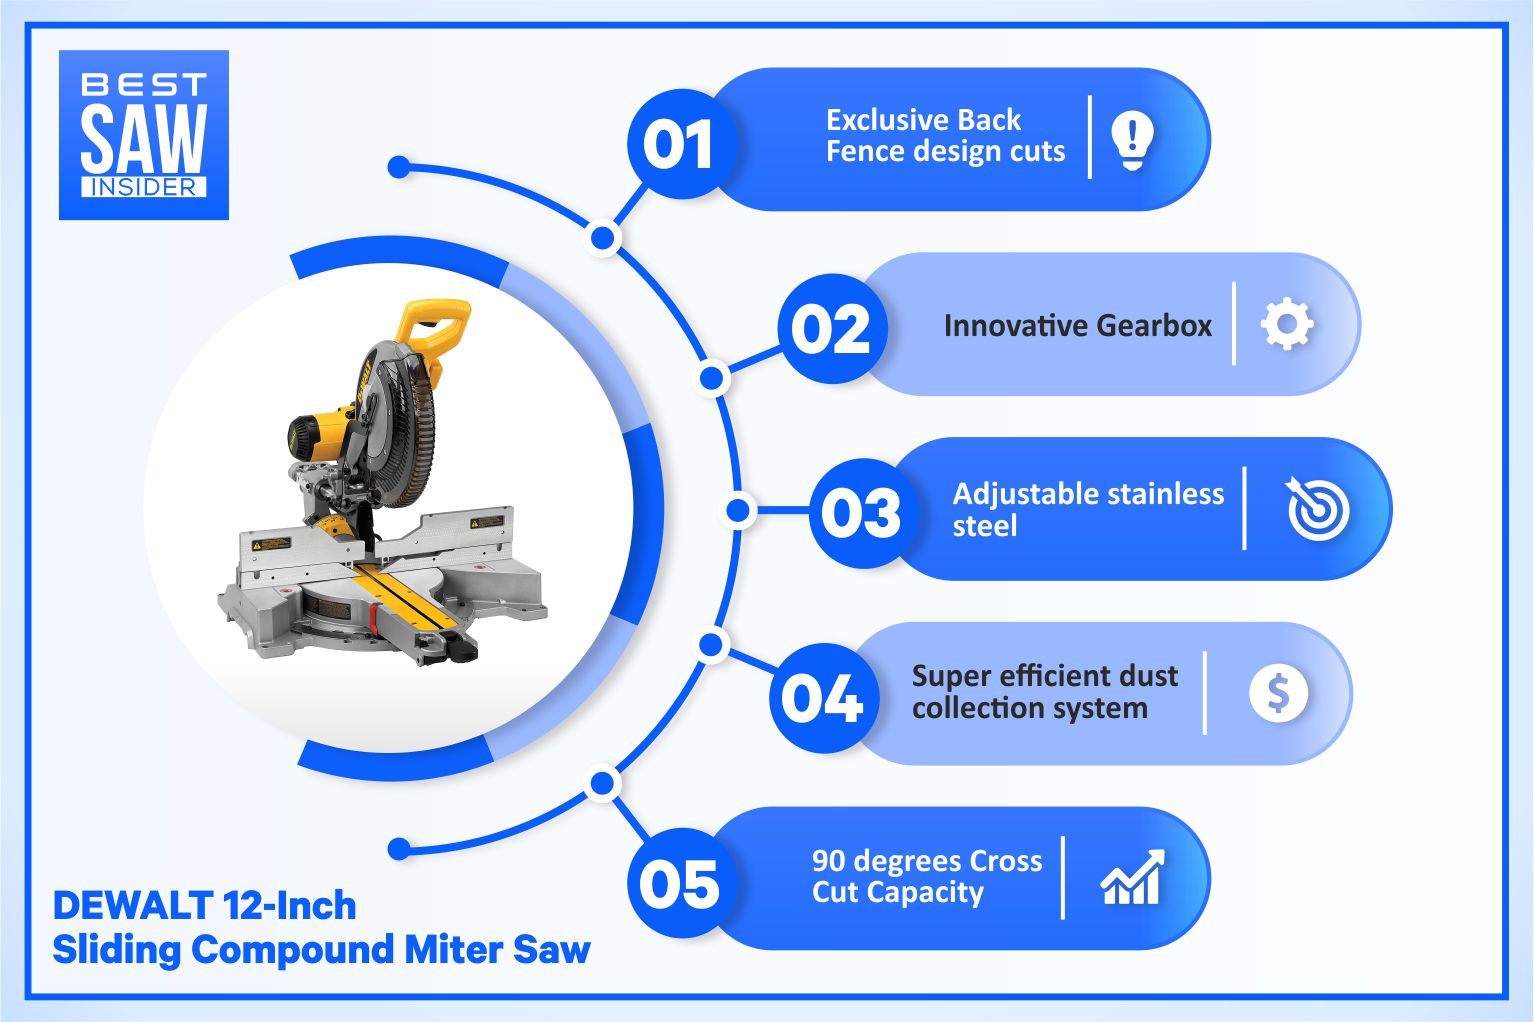 Dewalt DWS780 - Best Sliding Compound Miter Saw infographic review